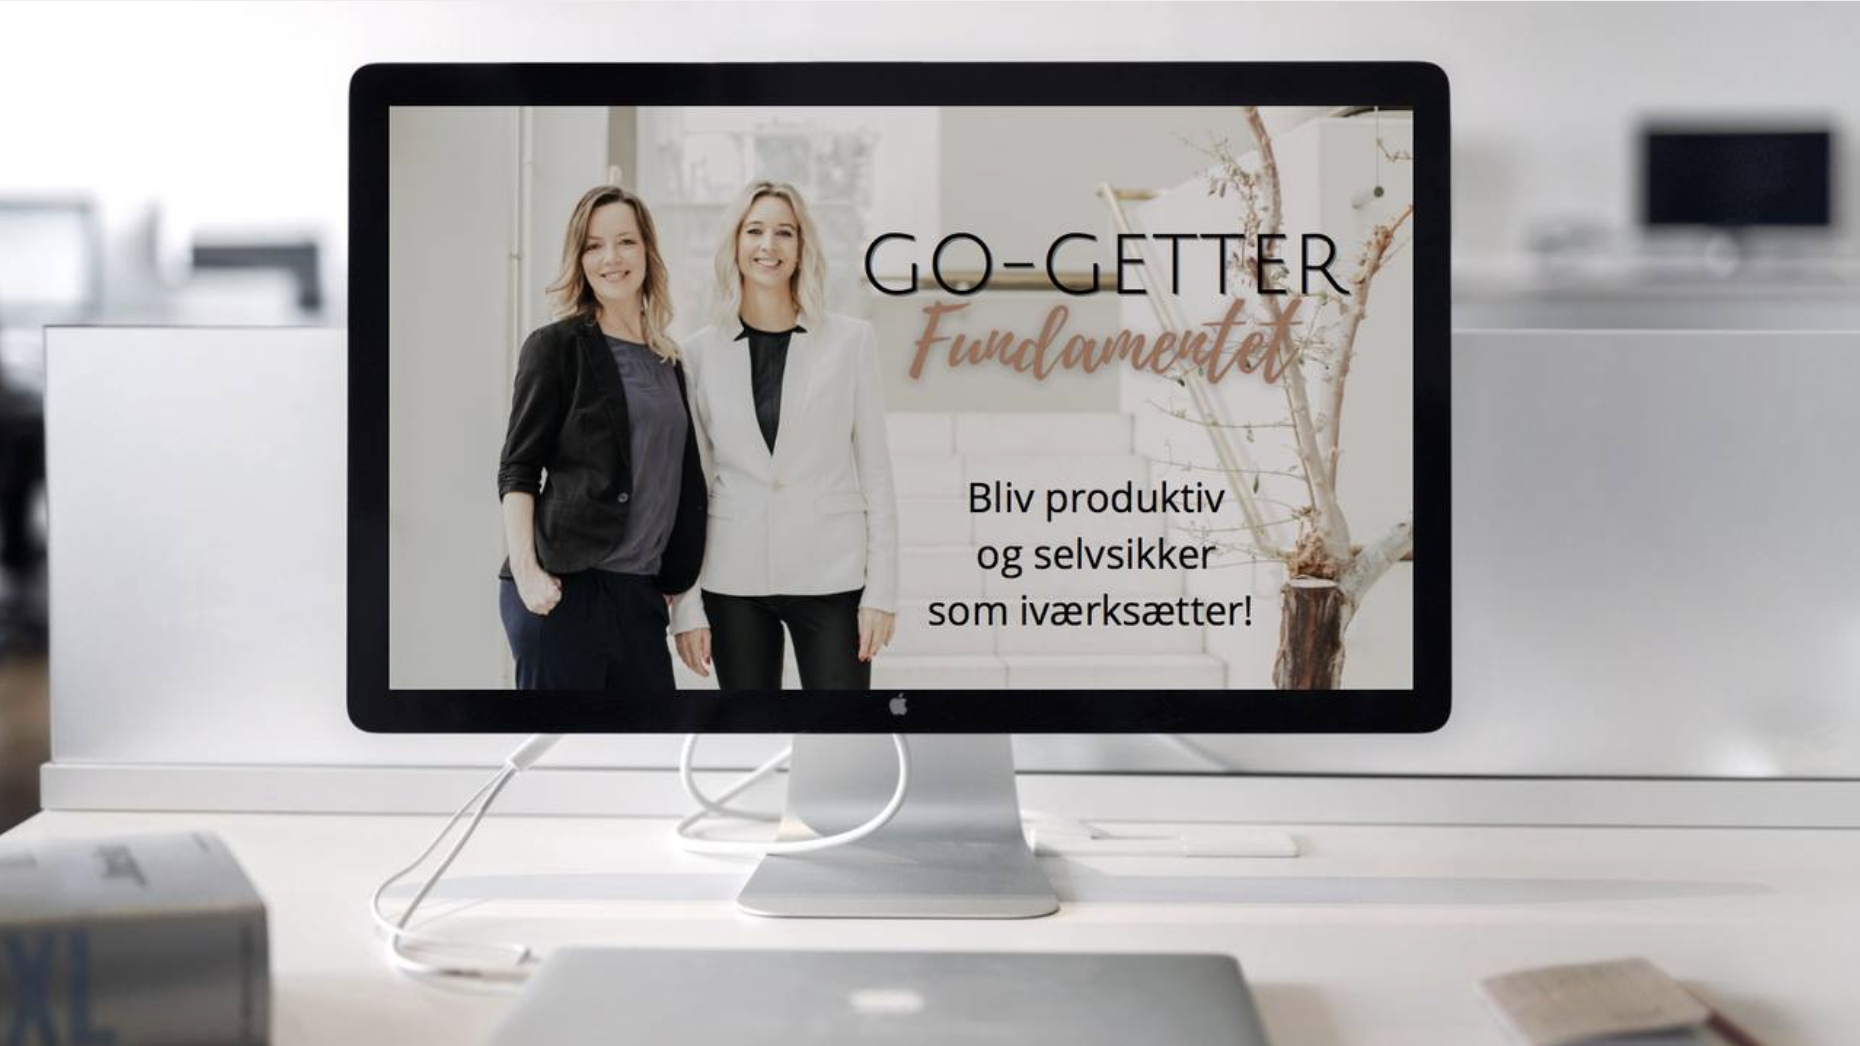 Go-Getter fundamentet